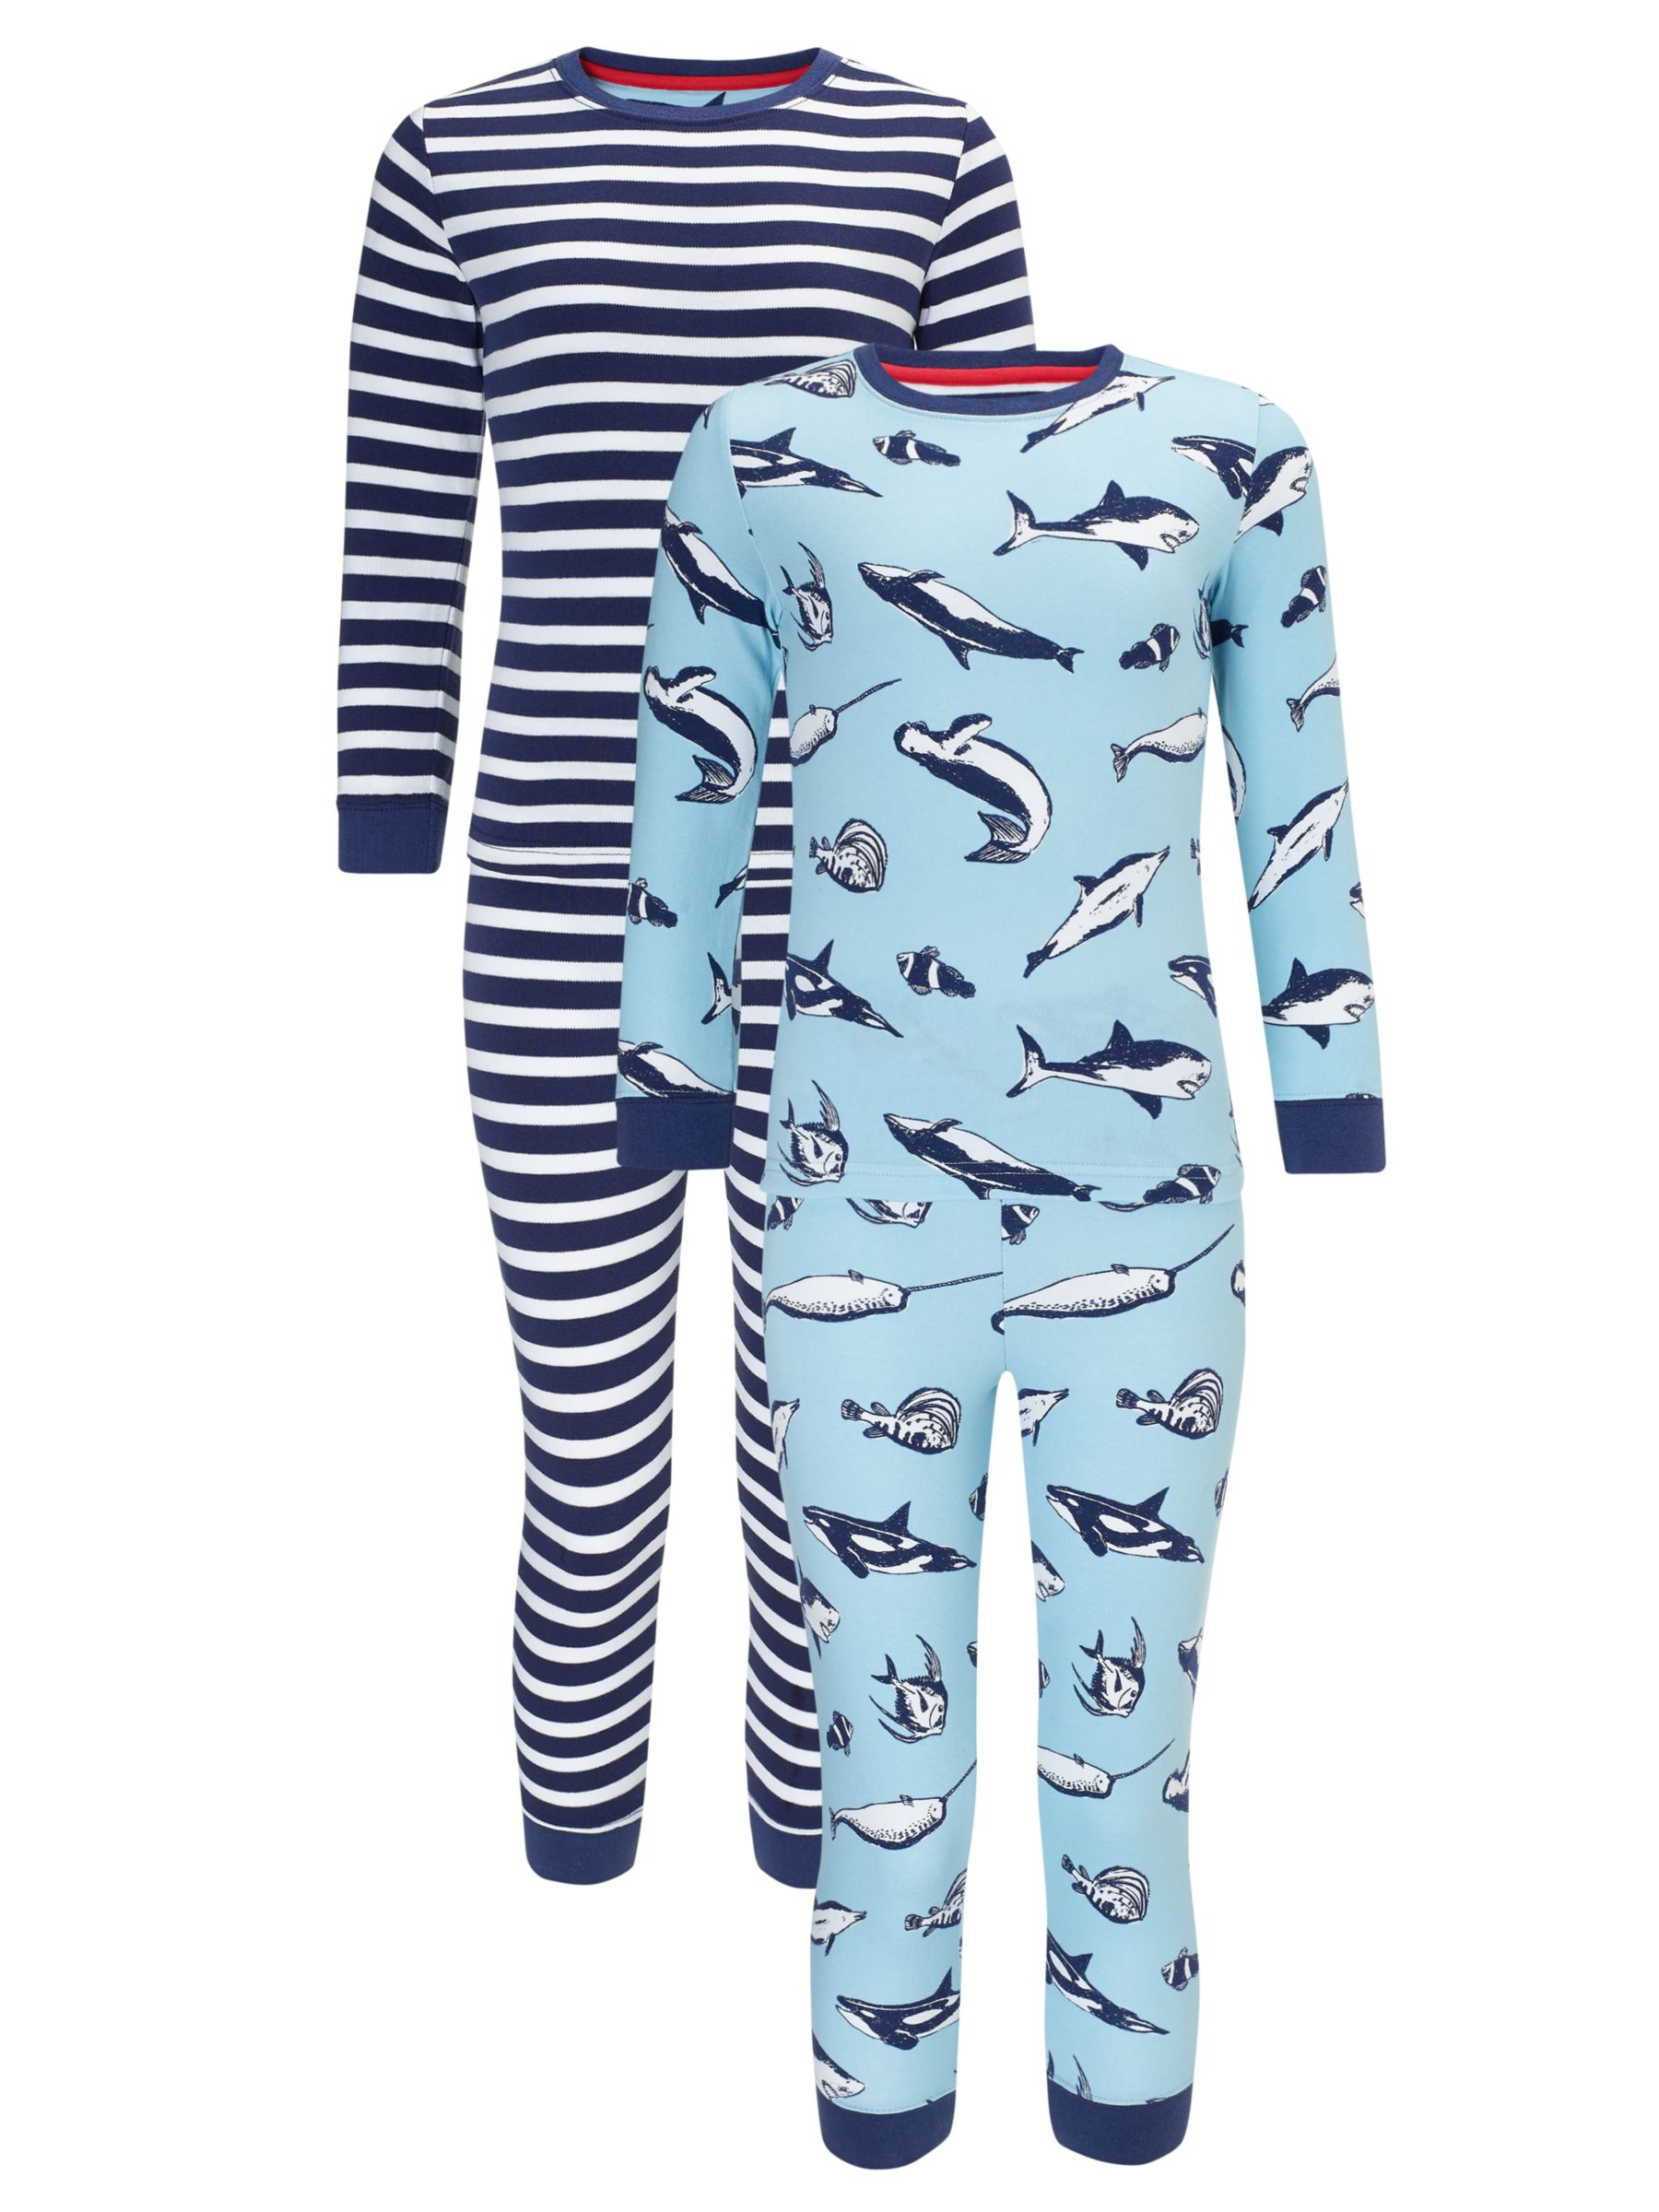 John Lewis Boy Shark and Stripe Pyjamas, Pack of 2, Blue/White